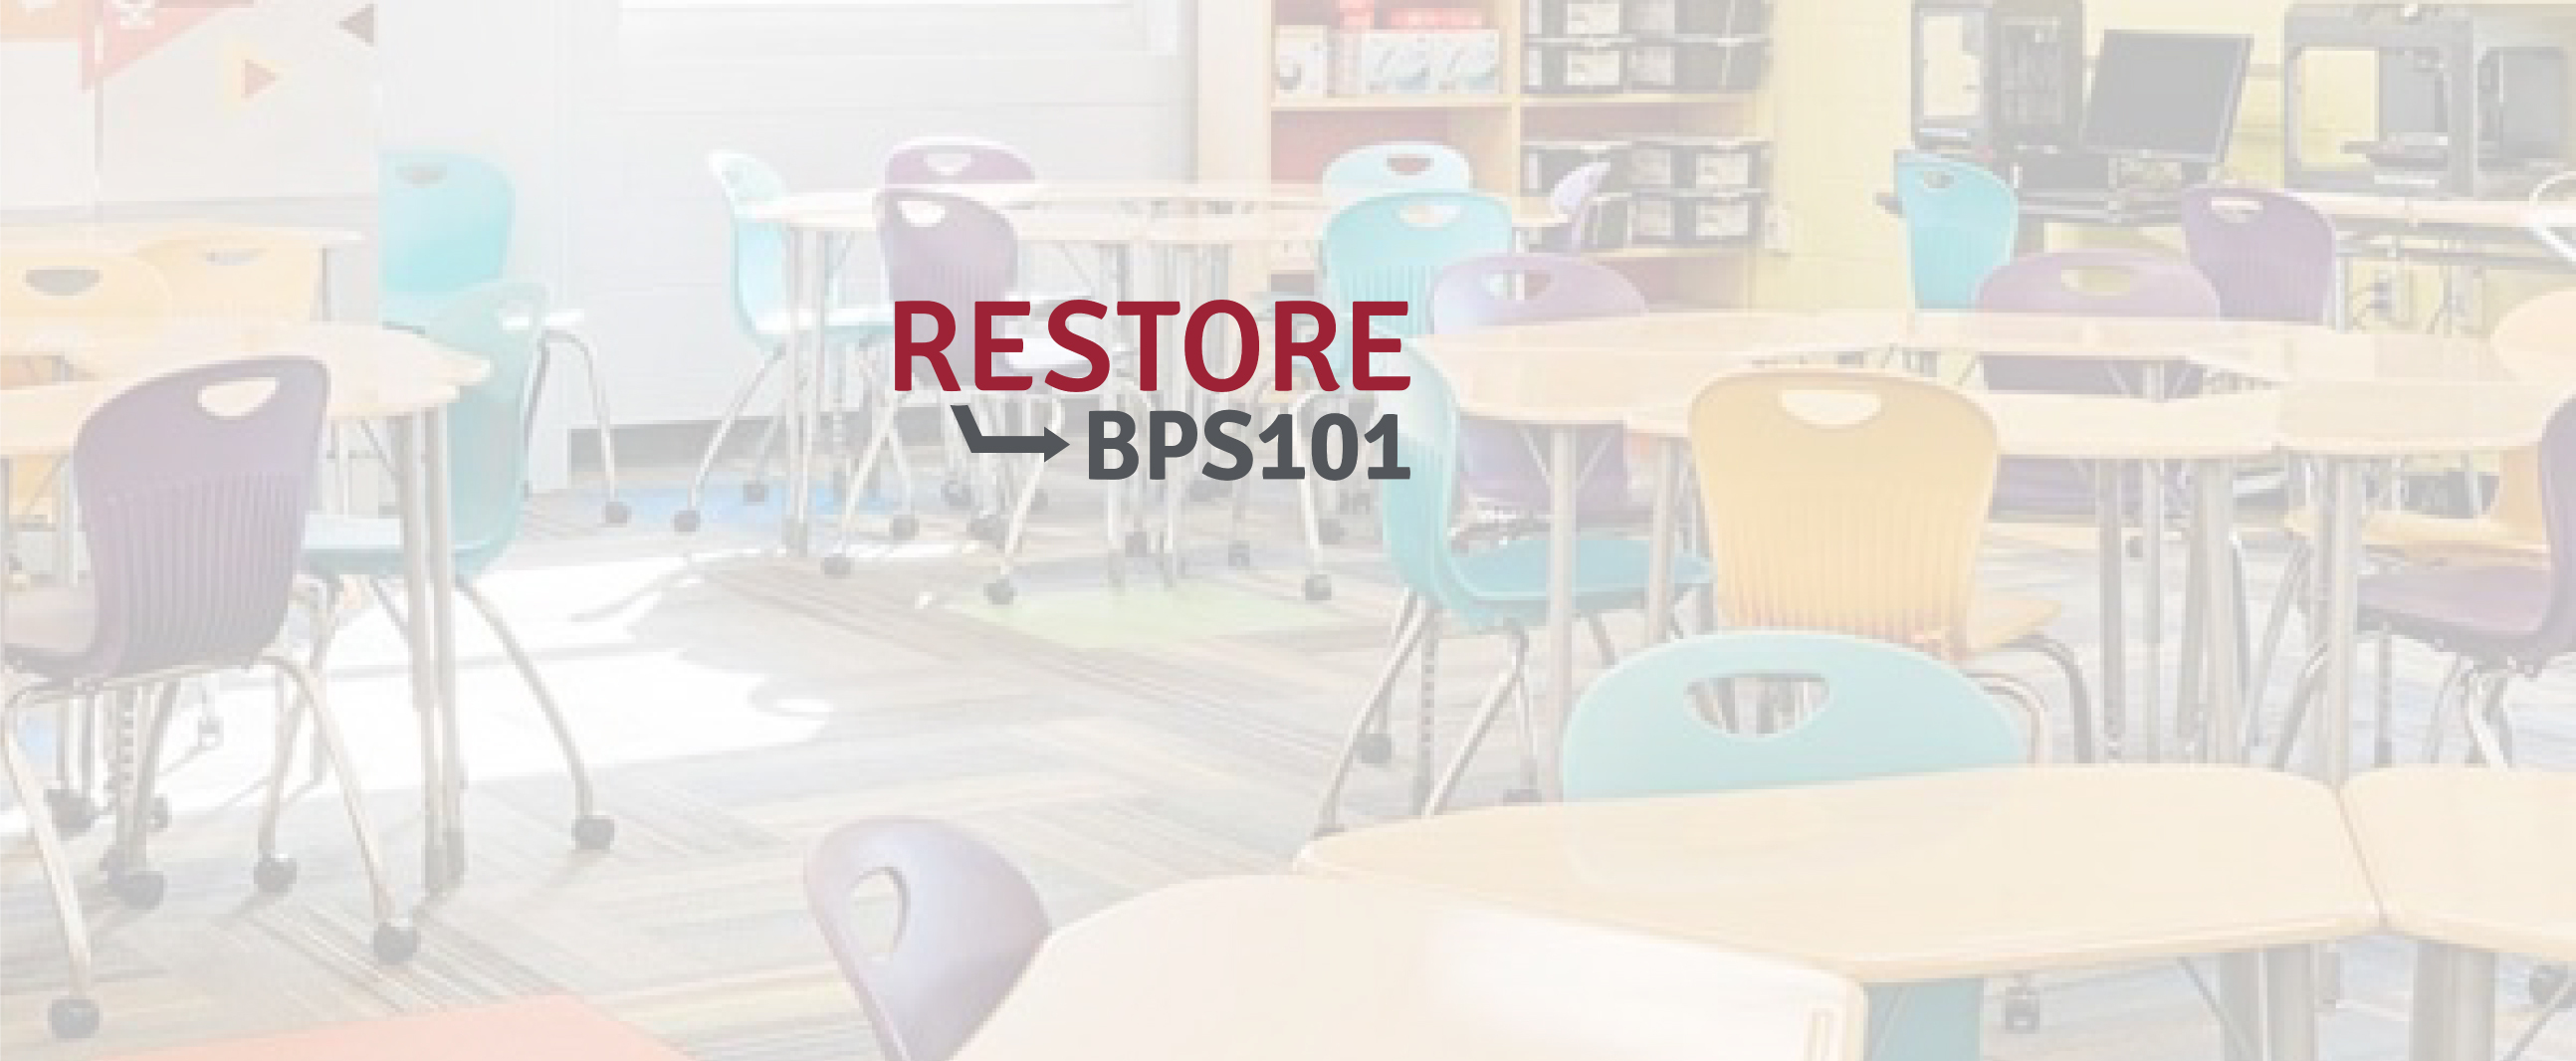 "<h2>Restore BPS101</h2> <p class=""p2""><span class=""s1"">Look here for updates on plans for the Fall of 2020</span></p> <p>&nbsp;</p> <a href=""https://restore.bps101.net/"" class=""button "">HERE</a>"